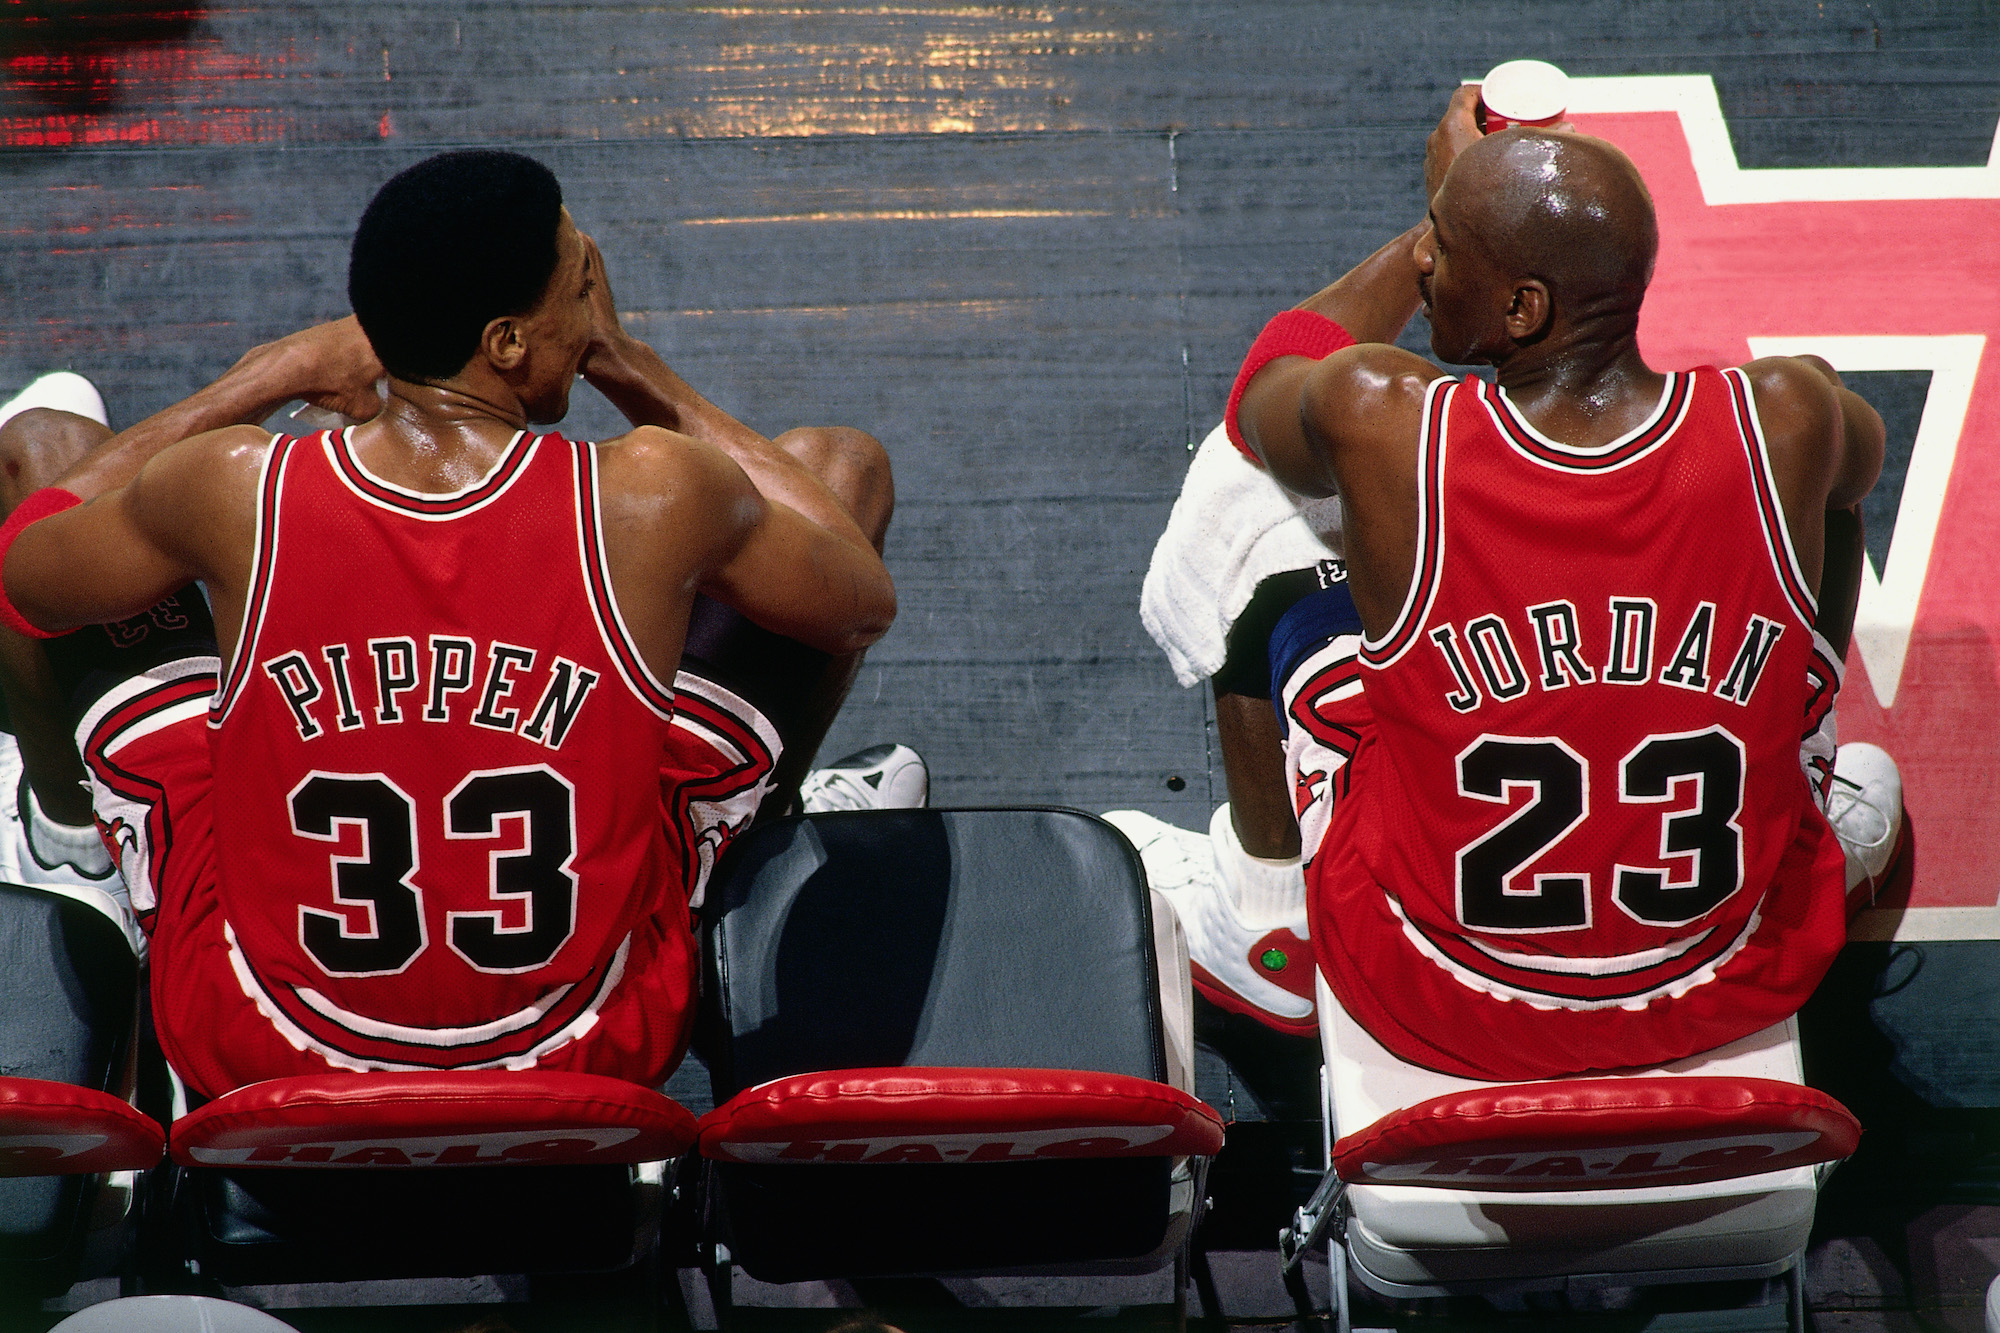 VANCOUVER, BC - JANUARY 27: Scottie Pippen #33 and Michael Jordan #23 of the Chicago Bulls sit on the bench during the game against the Vancouver Grizzlies at General Motors Place on January 27, 1998 in Vancouver, British Columbia, Canada. NOTE TO USER: User expressly acknowledges and agrees that, by downloading and or using this photograph, User is consenting to the terms and conditions of the Getty Images License Agreement. Mandatory Copyright Notice: Copyright 1998 NBAE (Photo by Andy Hayt/NBAE via Getty Images)